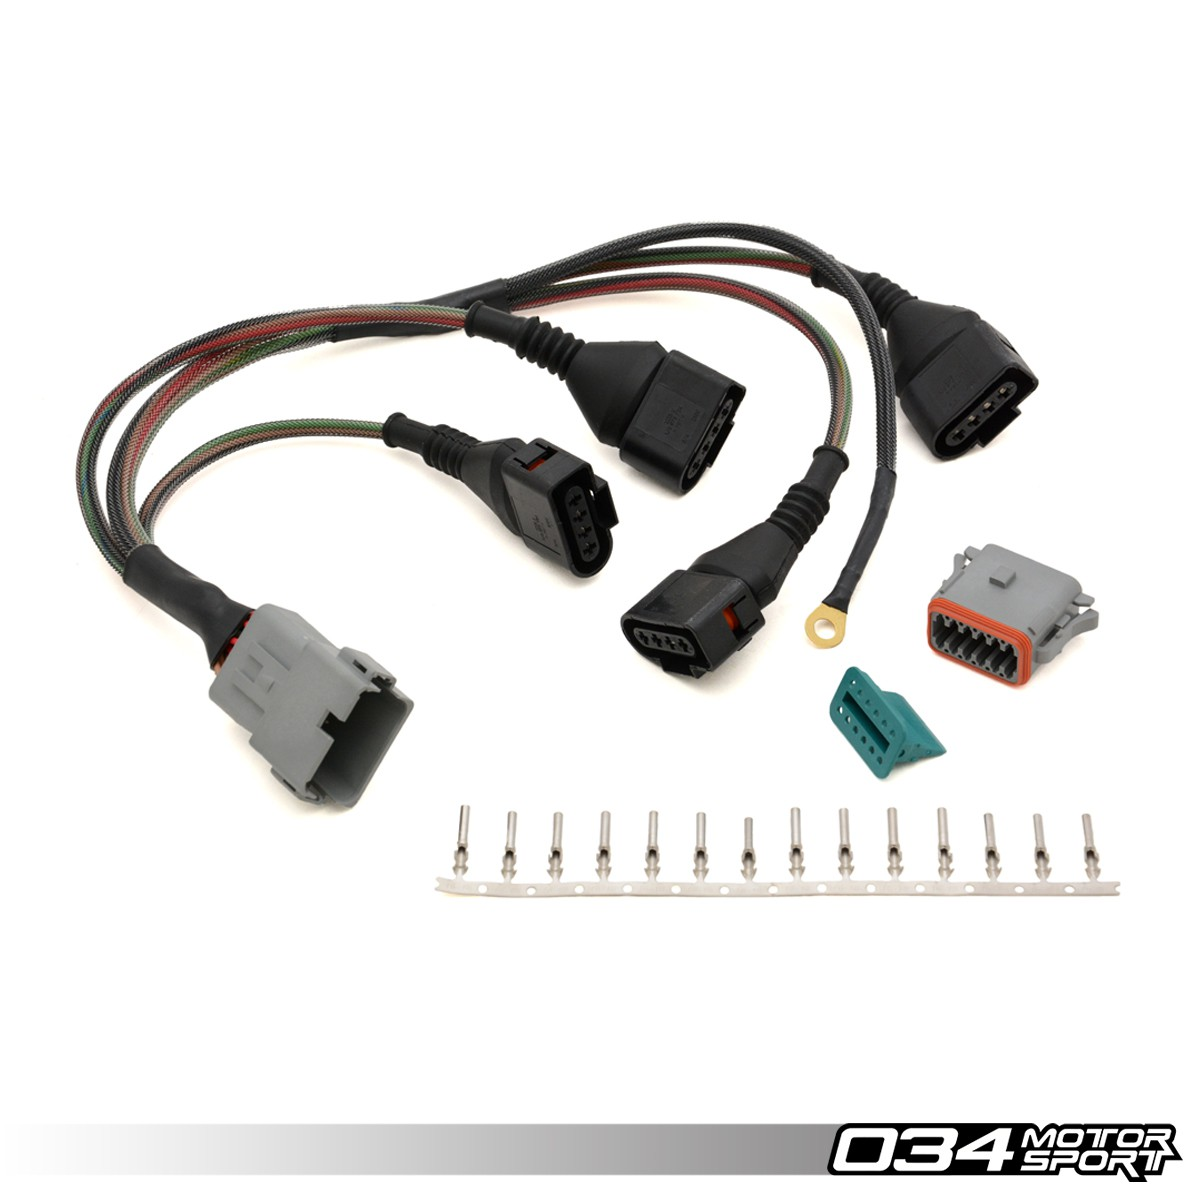 repair update harness audi volkswagen 18t with 4 wire coils 034motorsport 034 701 0004 2 repair update harness, audi volkswagen 1 8t with 4 wire coils what is the process for repairing wires in a harness at honlapkeszites.co